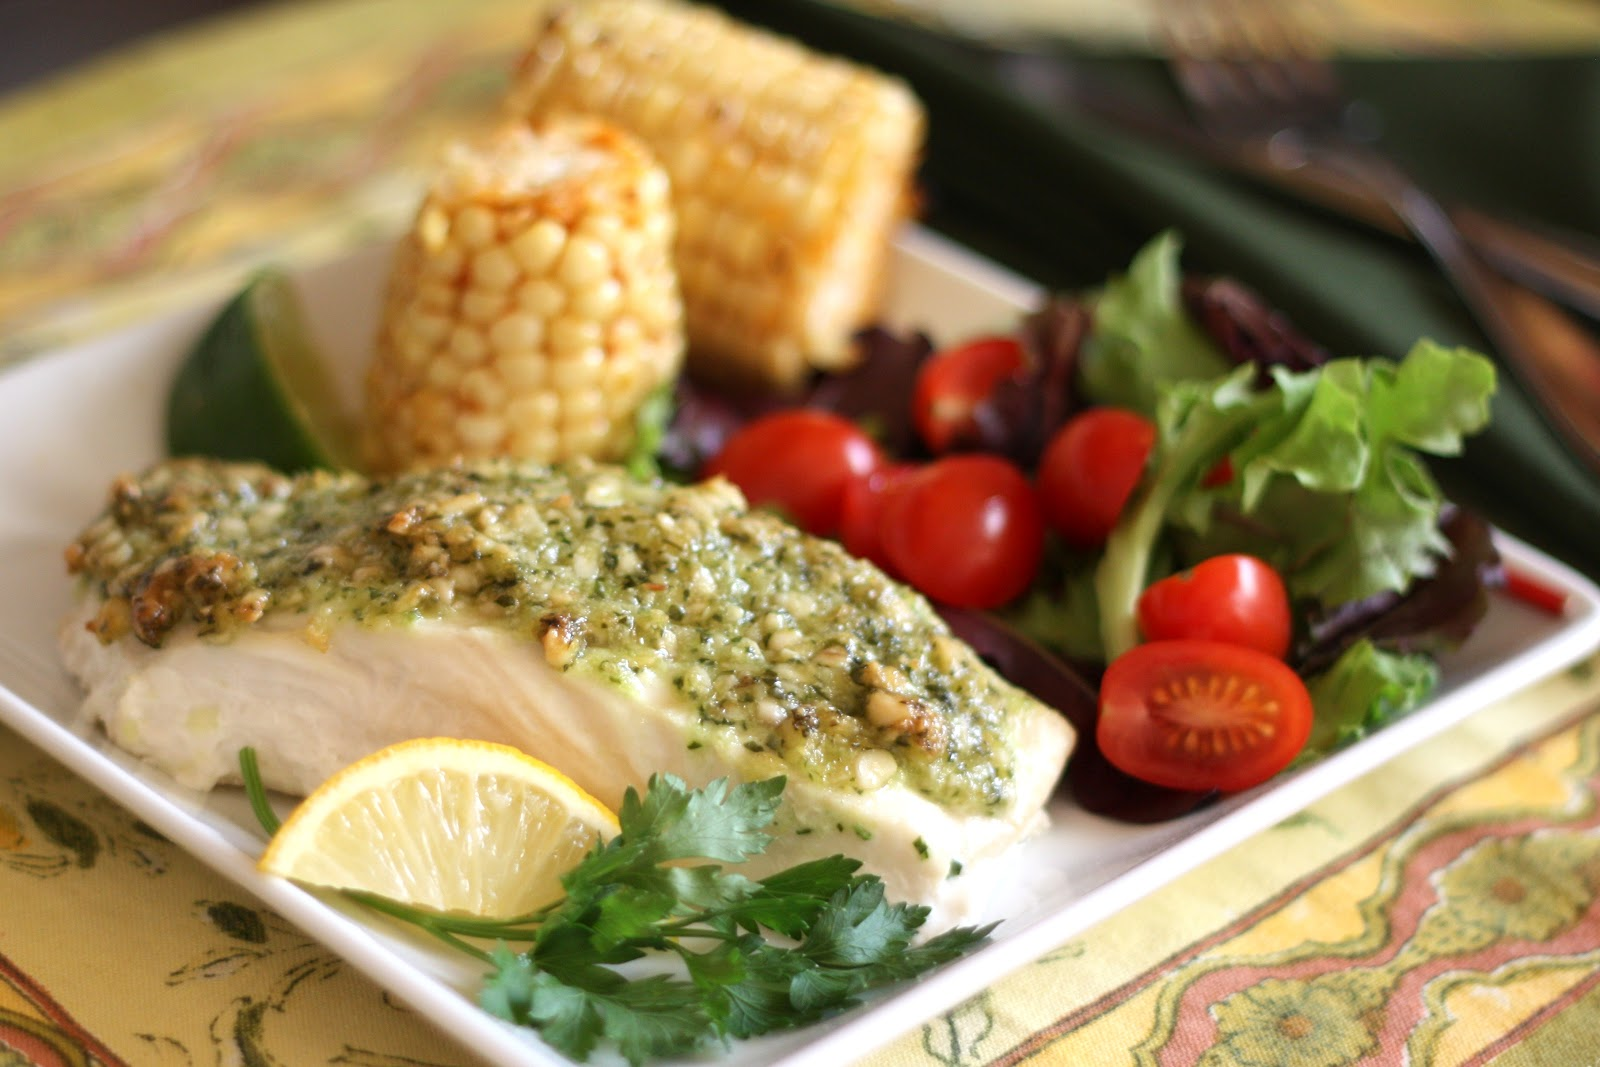 ... In The Kitchen: Baked Halibut with Pine Nut, Parmesan and Pesto Crust